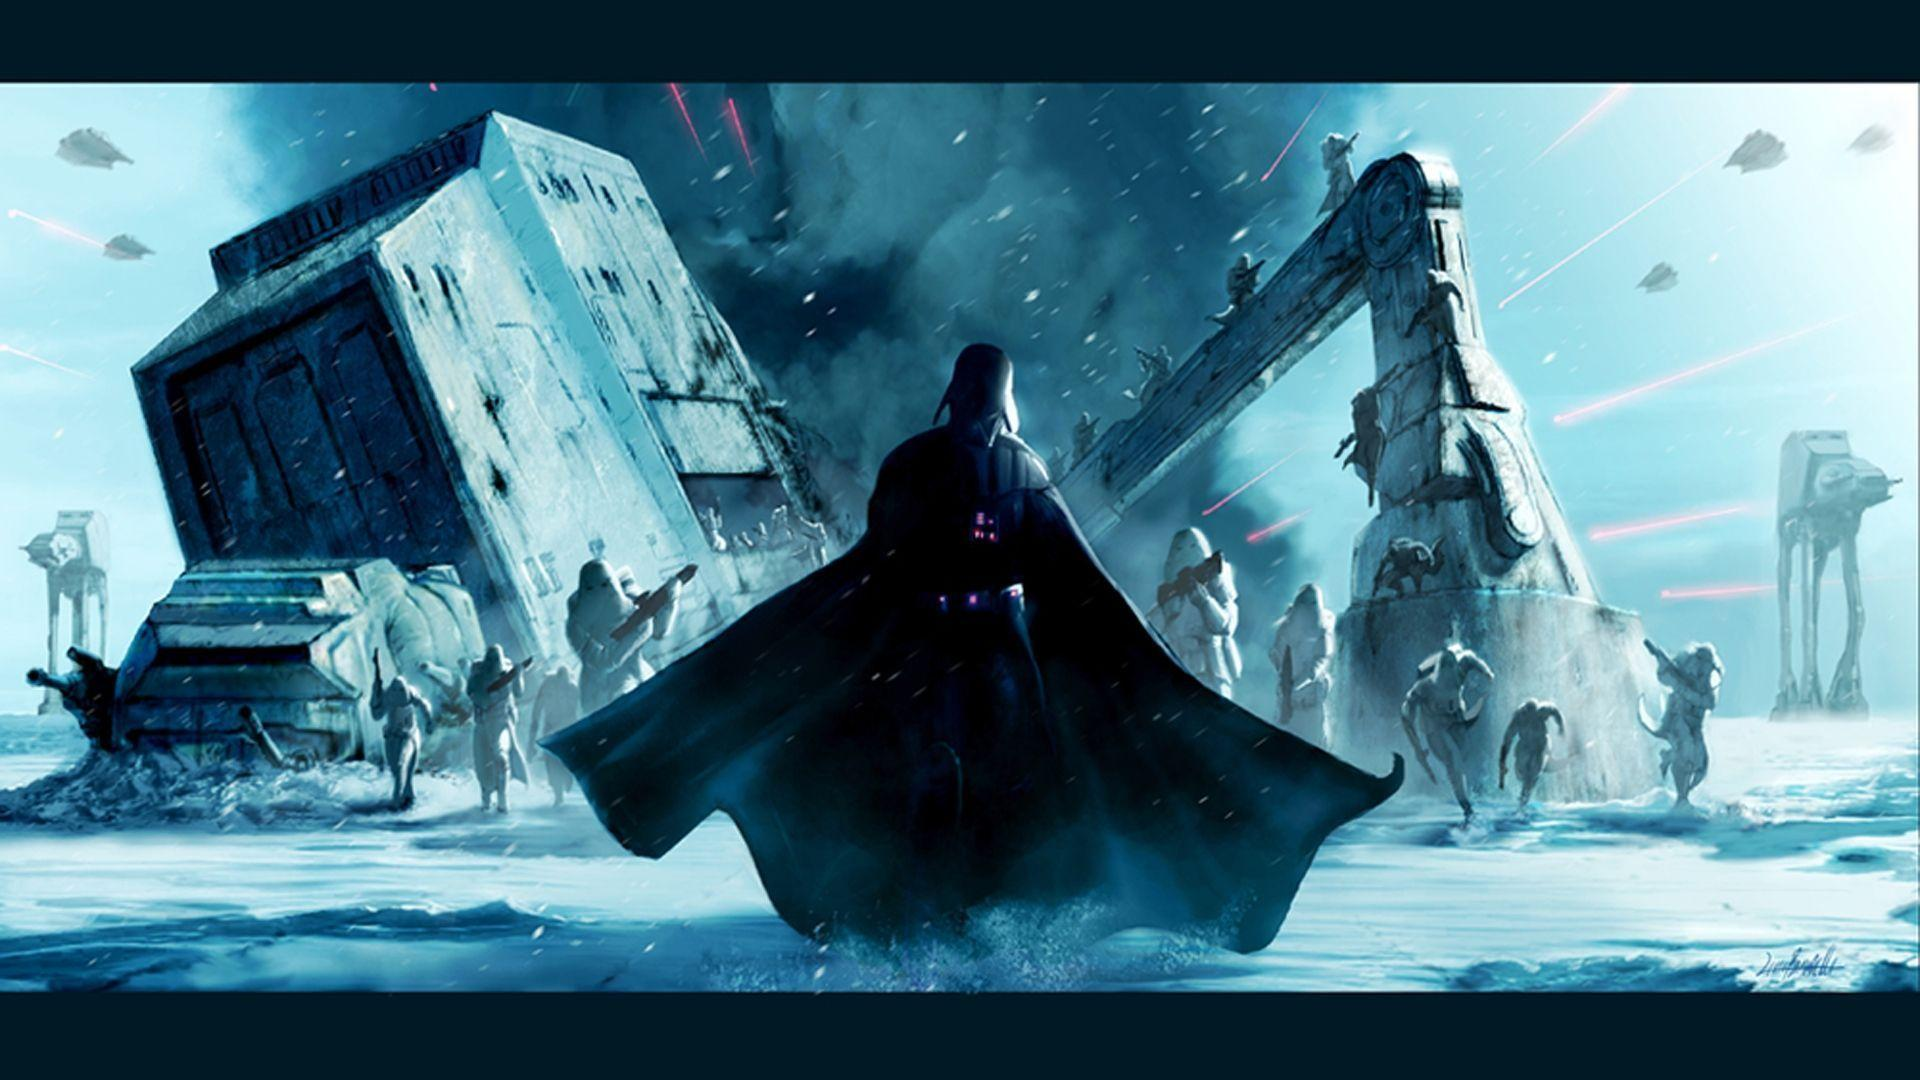 Star Wars Wallpapers Top Free Star Wars Backgrounds Wallpaperaccess